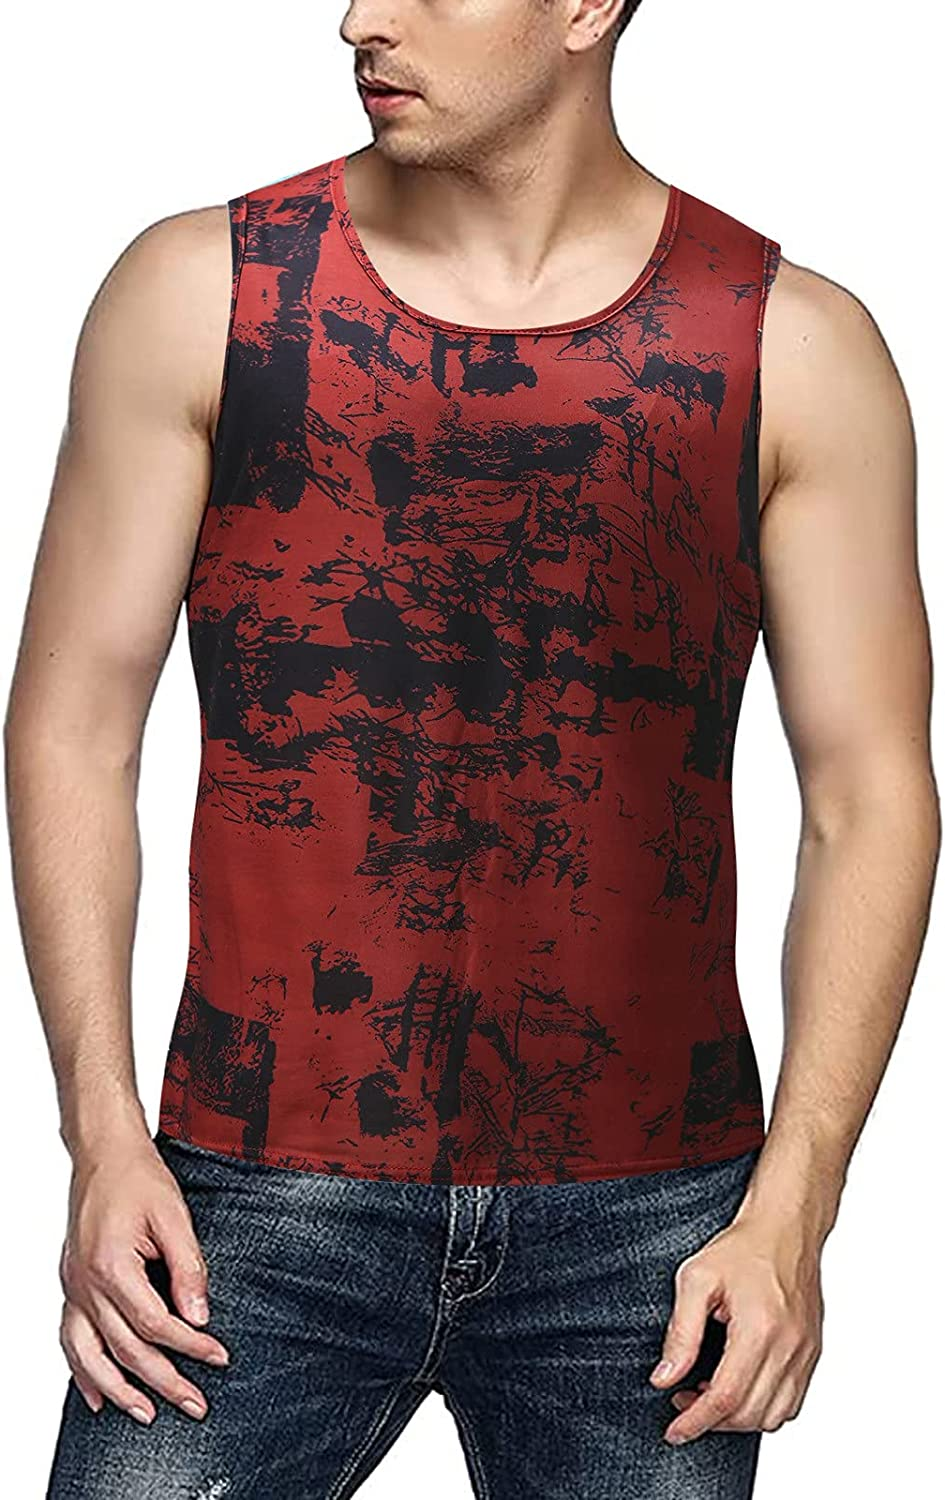 FUNEY Mens Tank Tops Sleeveless Gym Muscle Fitness Bodybuilding T Shirt Breathable 3D Print Lightweight Novelty Jersey Tees